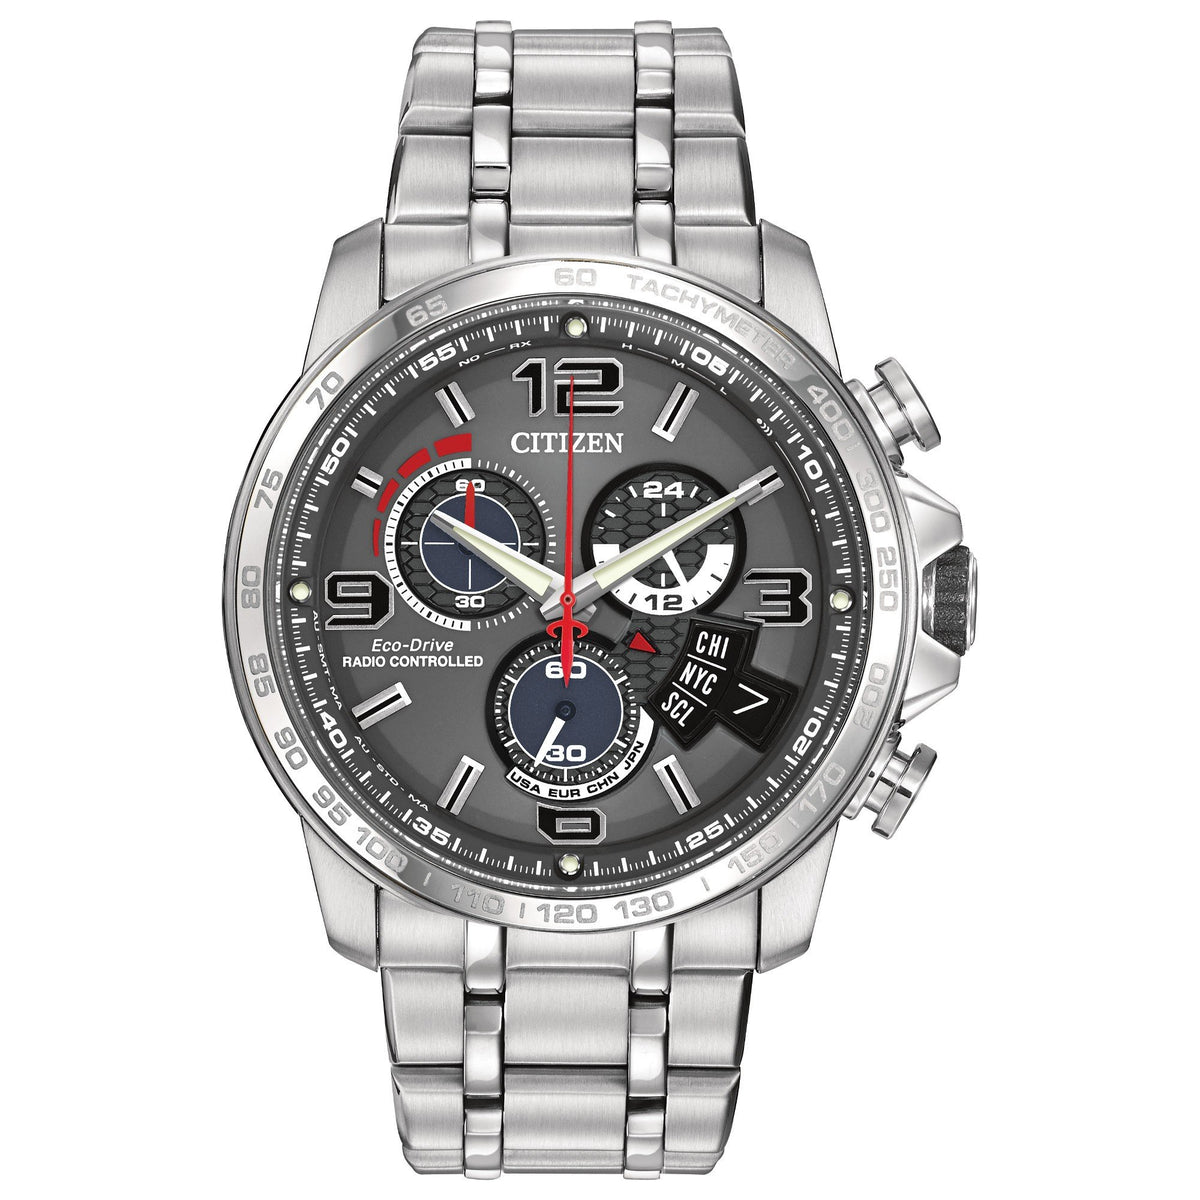 Citizen Eco Drive Chrono-Time A-T Men's Watch BY0100-51H